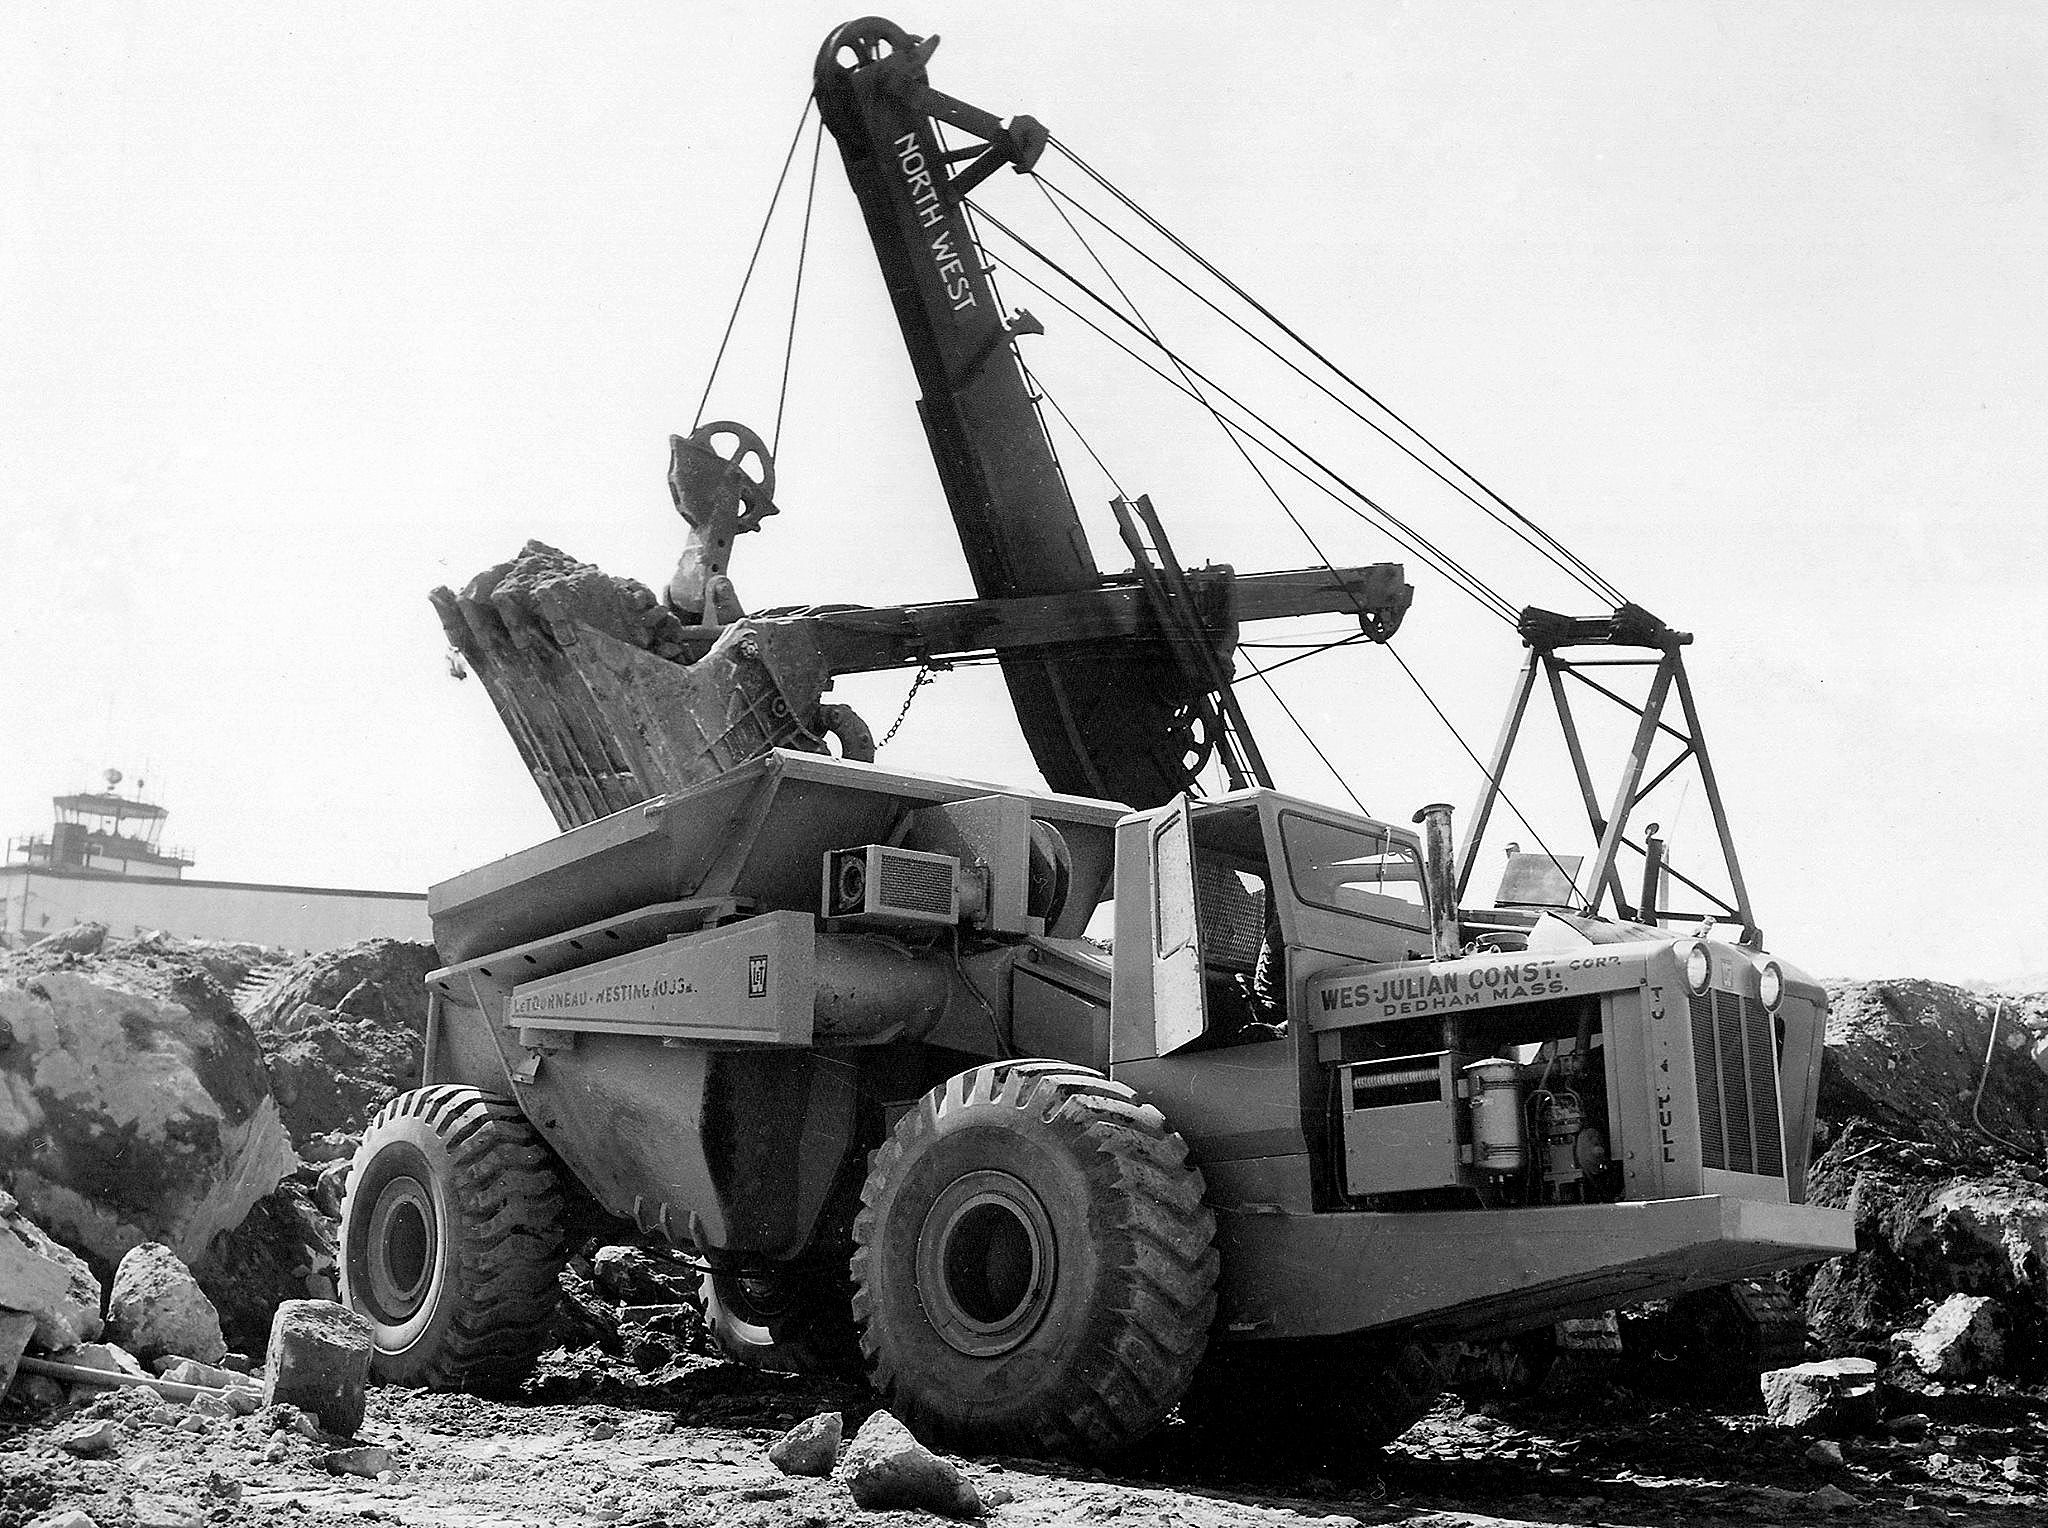 Great photo of a LeTourneau-Westinghouse C Tournarocker owned by the  Wes-Julian Corp, at work in Bedford Massachusetts, USA in 1956.